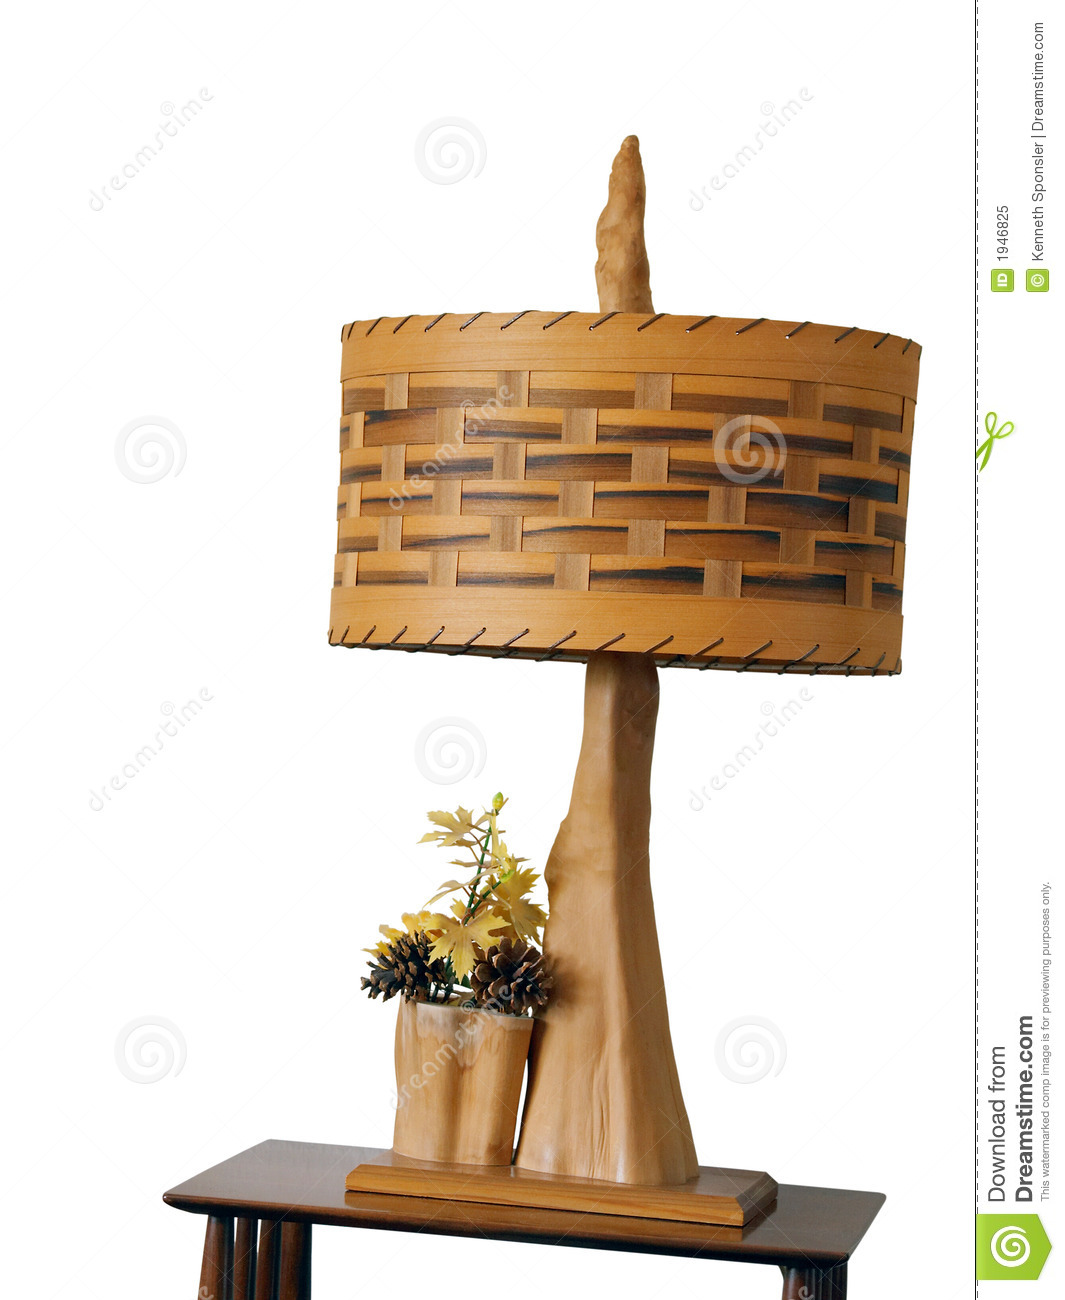 Wooden Lamp Royalty Free Stock Photo Image 1946825